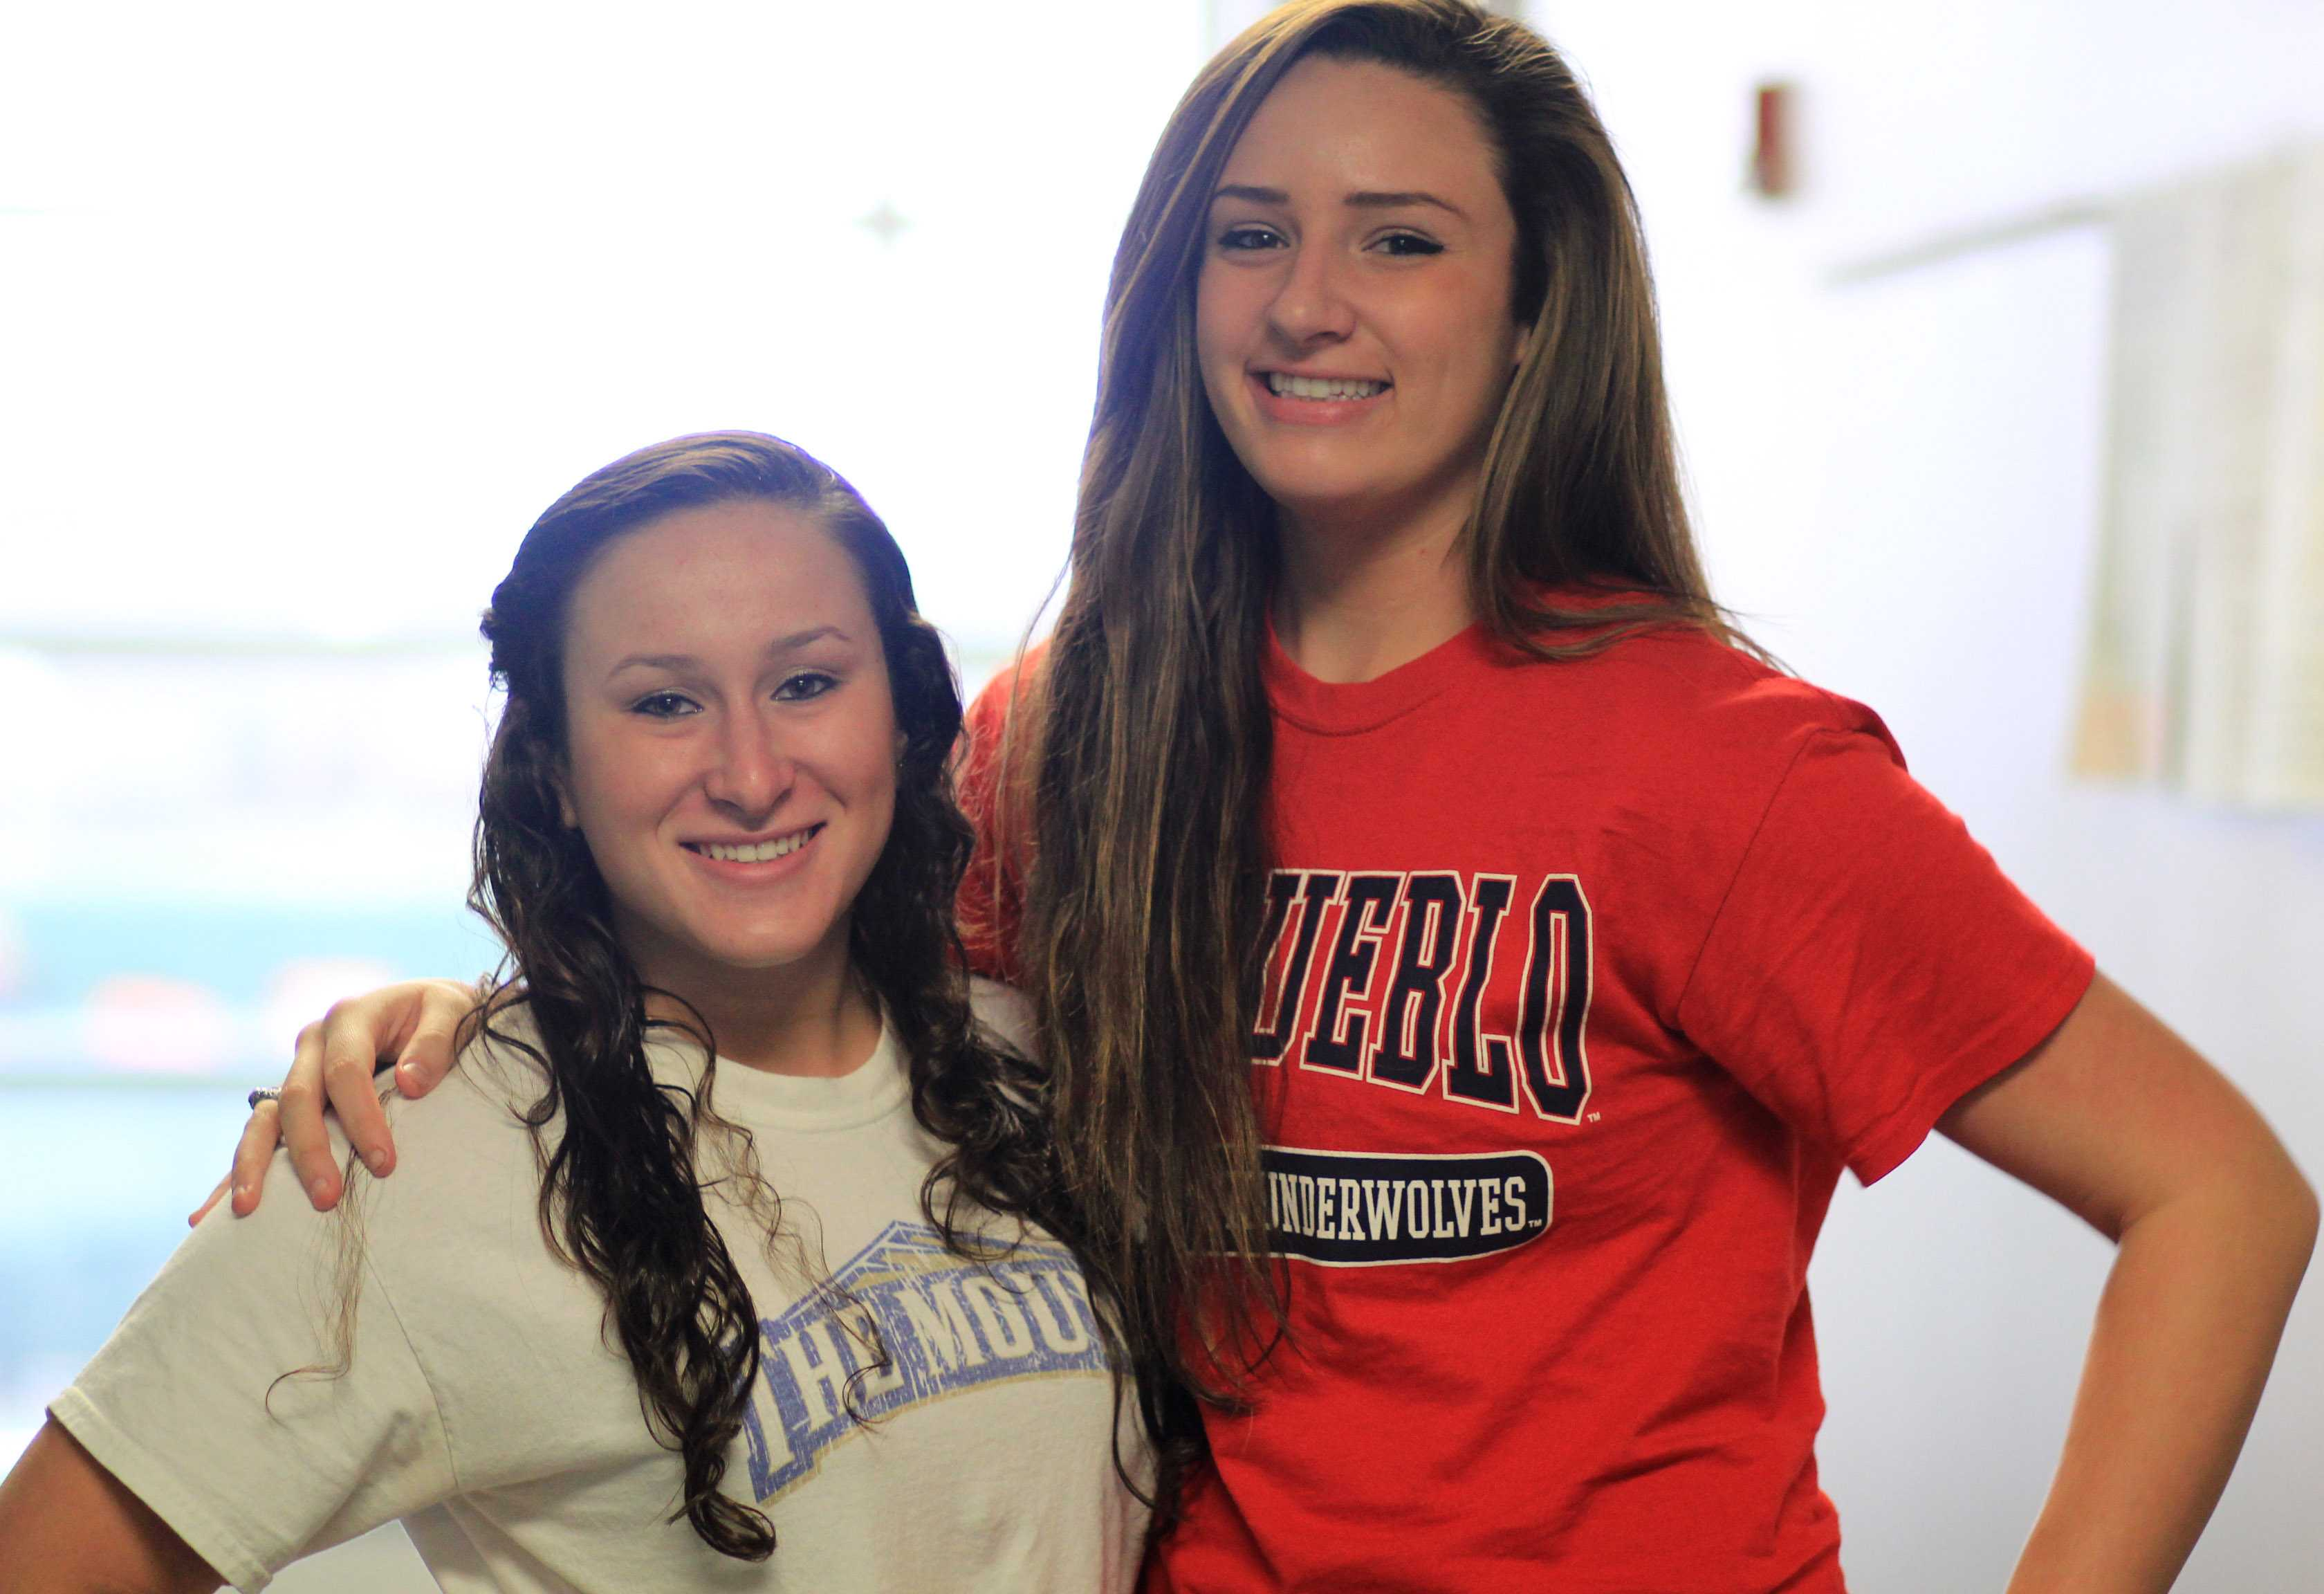 Sisters Angela and Amanda Moore outside of their third period class in their chosen college gear.